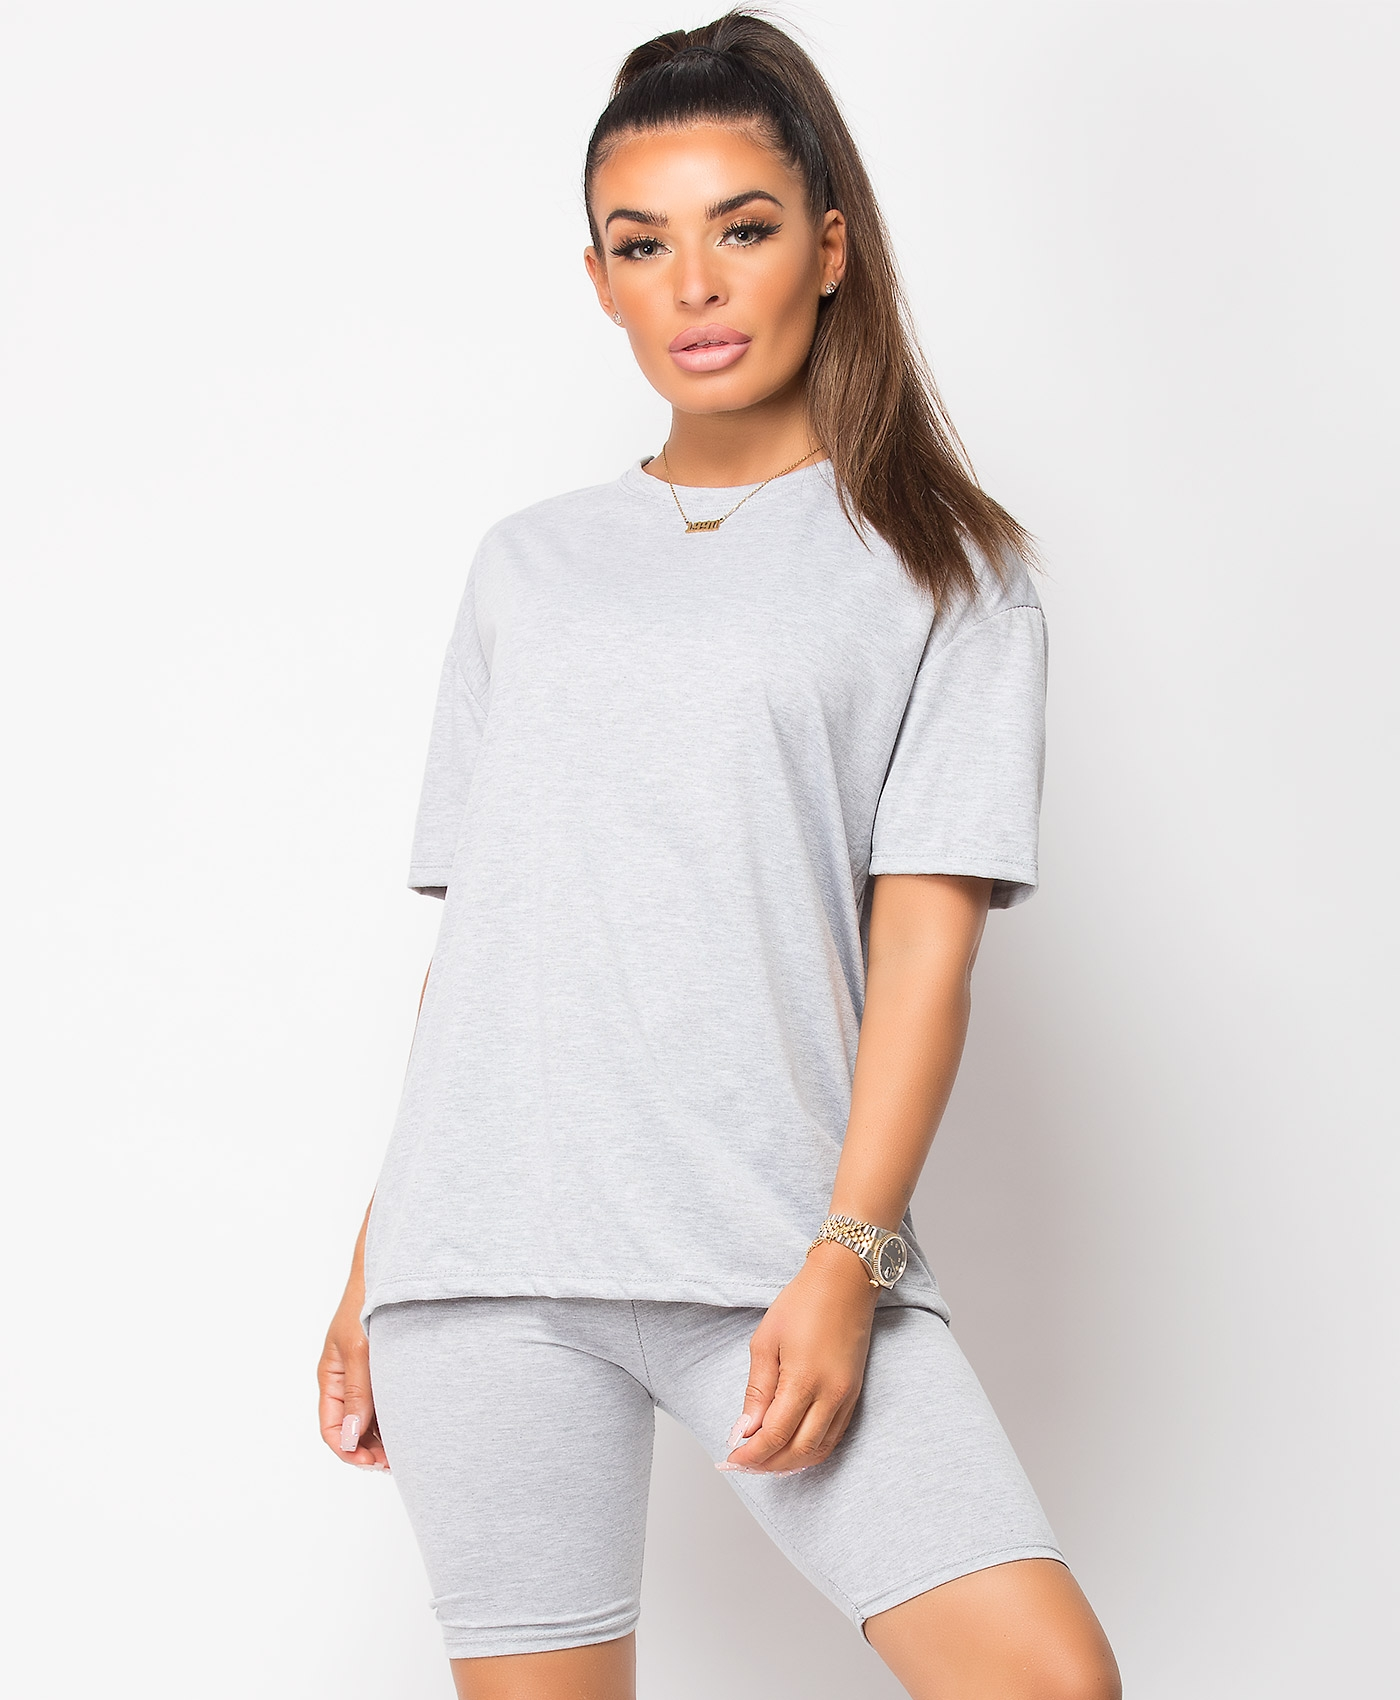 Grey-Cycling-Short-&-Oversize-T-Shirt-Co-Ord-Loungewear-Set-1